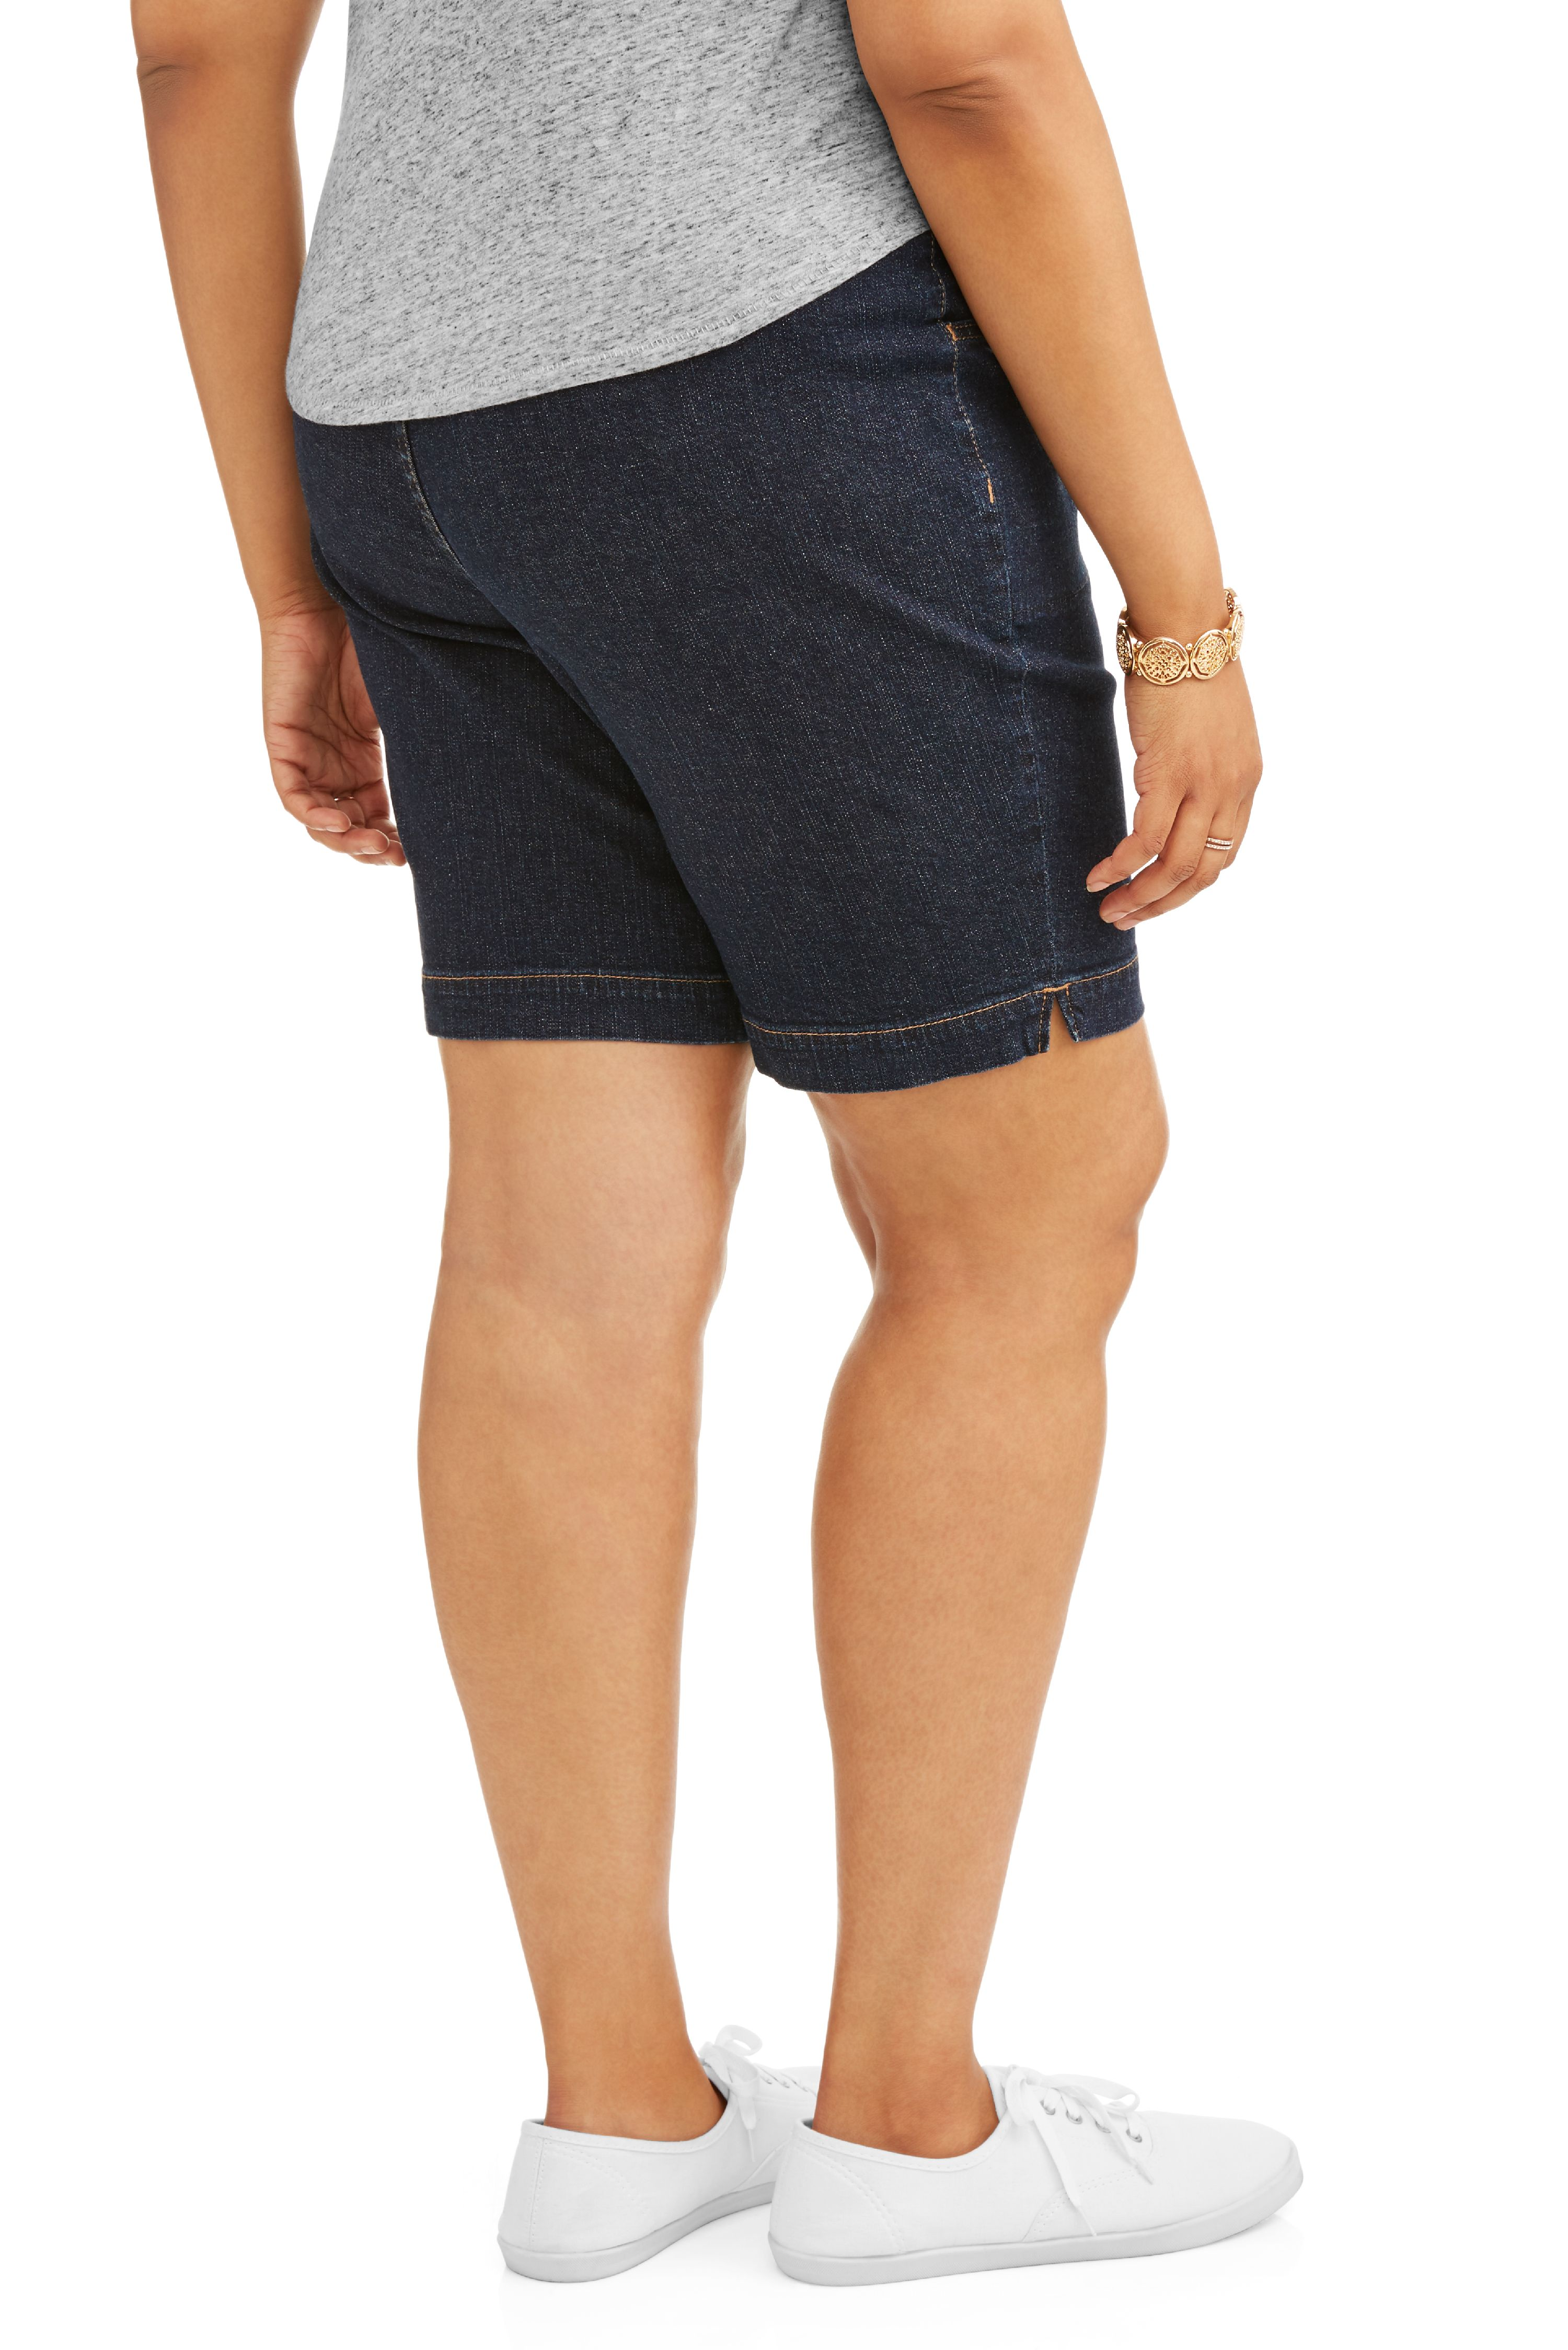 a52fbcad6286f Terra   Sky - Women s Plus 2 Pocket Pull On Short - Walmart.com